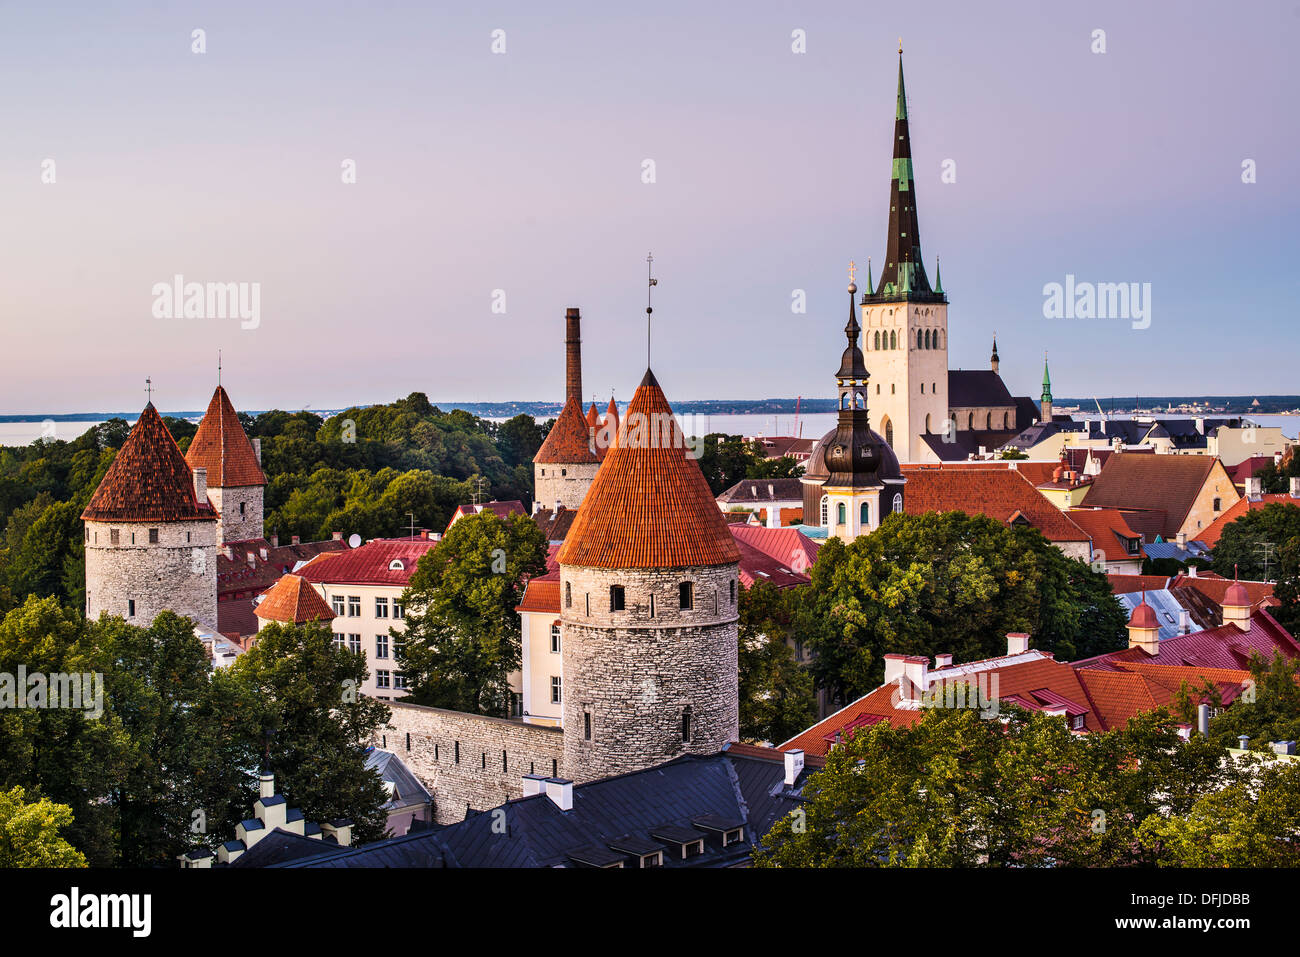 Skyline of Tallinn, Estonia at dusk. - Stock Image